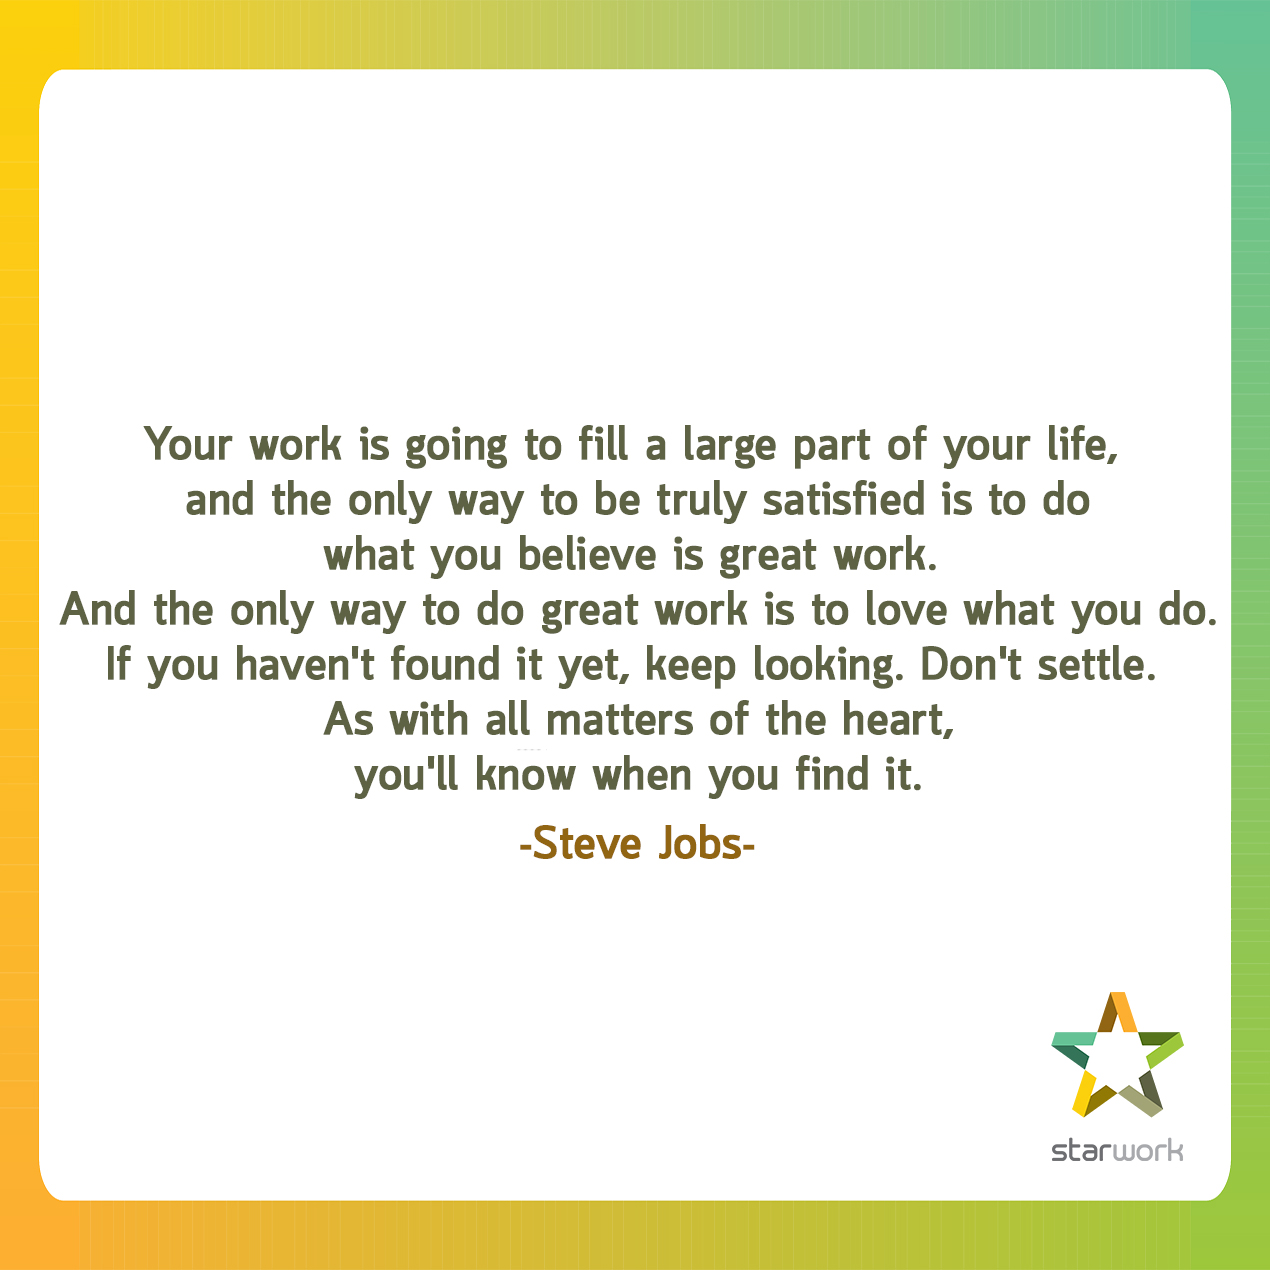 """Your work is going to fill a large part of your life, and the only way to be truly satisfied is to do what you believe is great work. And the only way to do great work is to love what you do. If you haven't found it yet, keep looking. Don't settle. As with all matters of the heart, you'll know when you find it."" ~Steve Jobs"